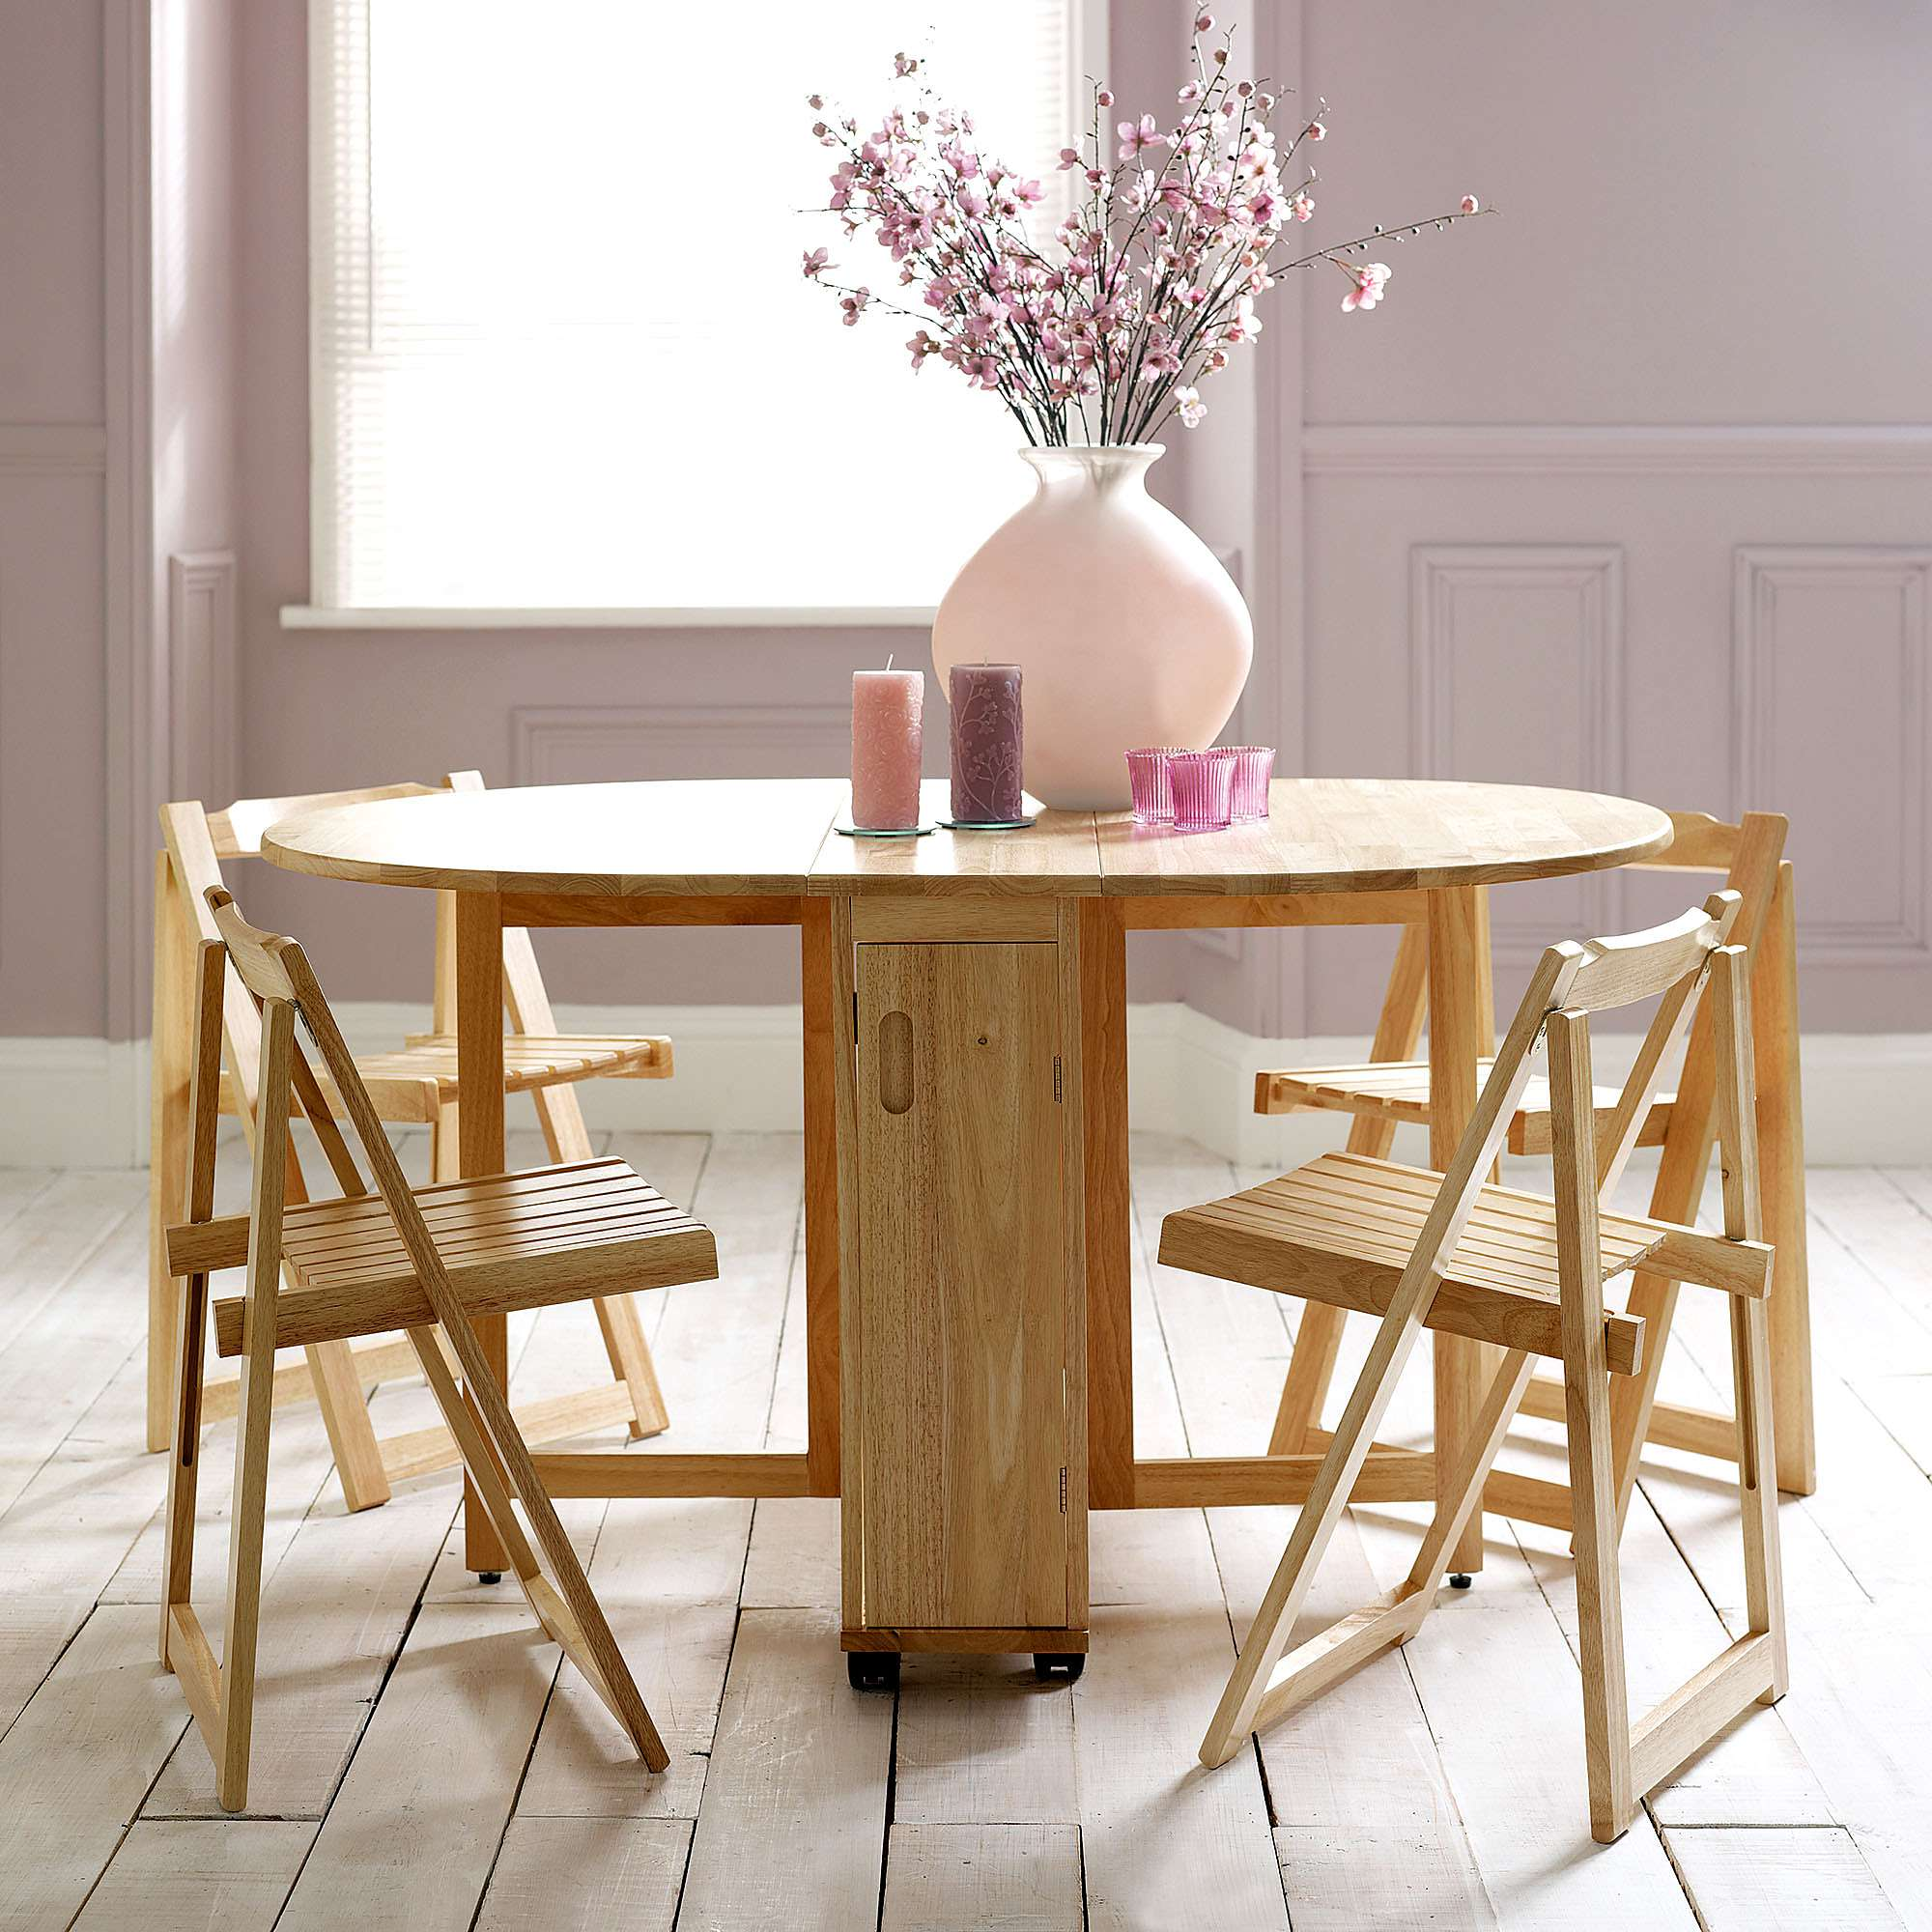 Choose a folding dining table for a small space adorable for Best dining tables for small spaces